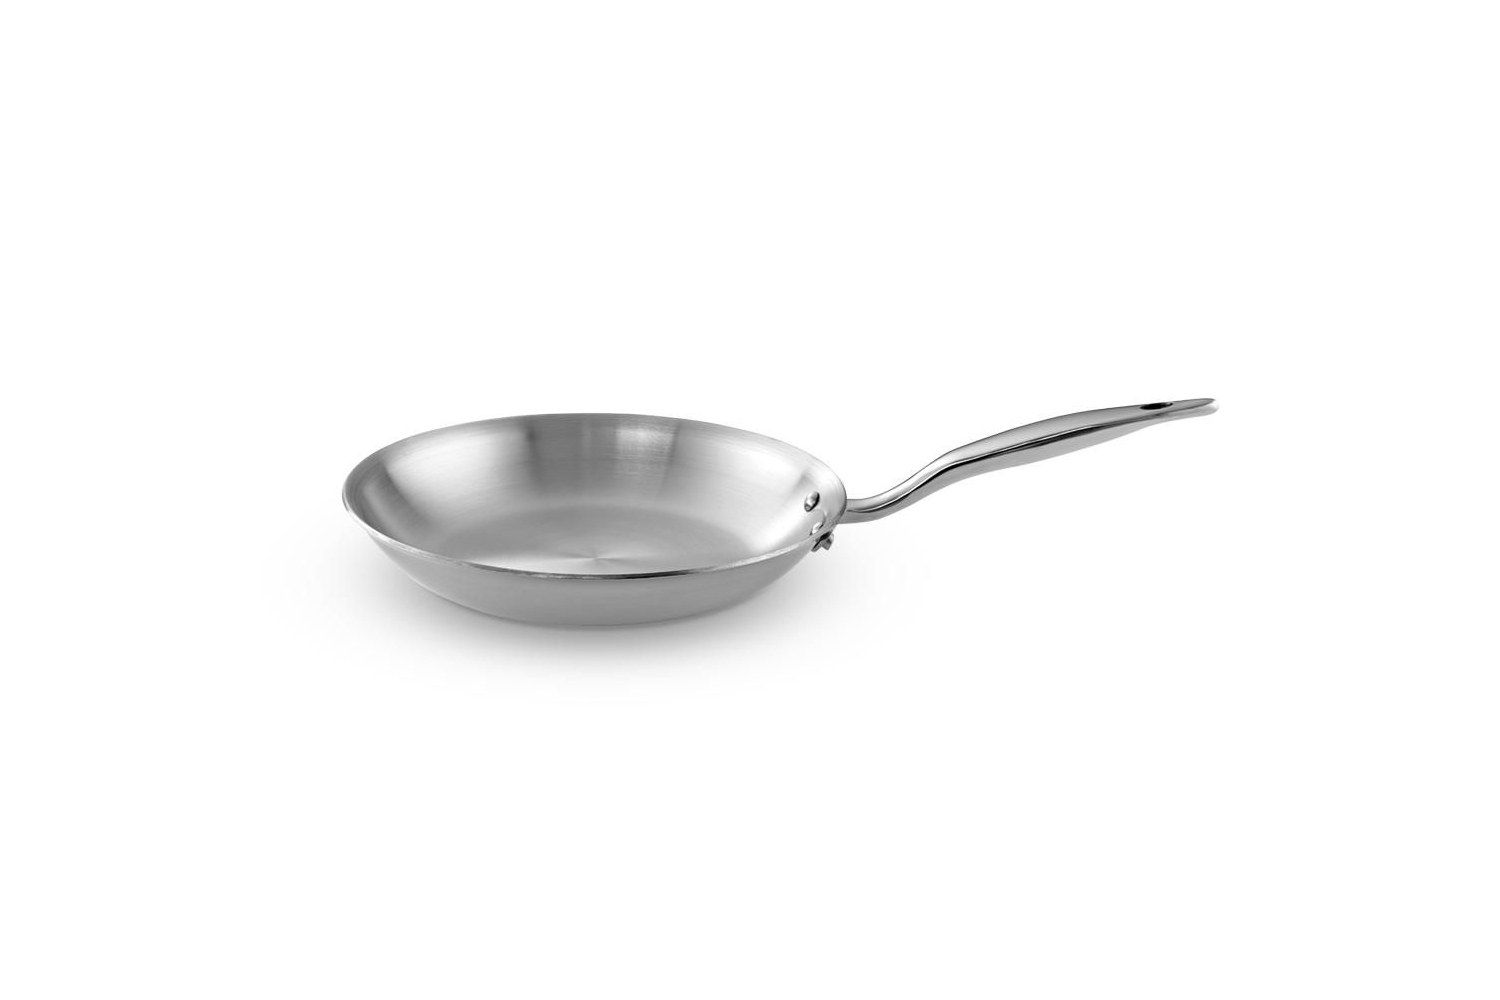 Hammer Stahl Stainless 7-Ply 10 1/2 inch Fry Pan